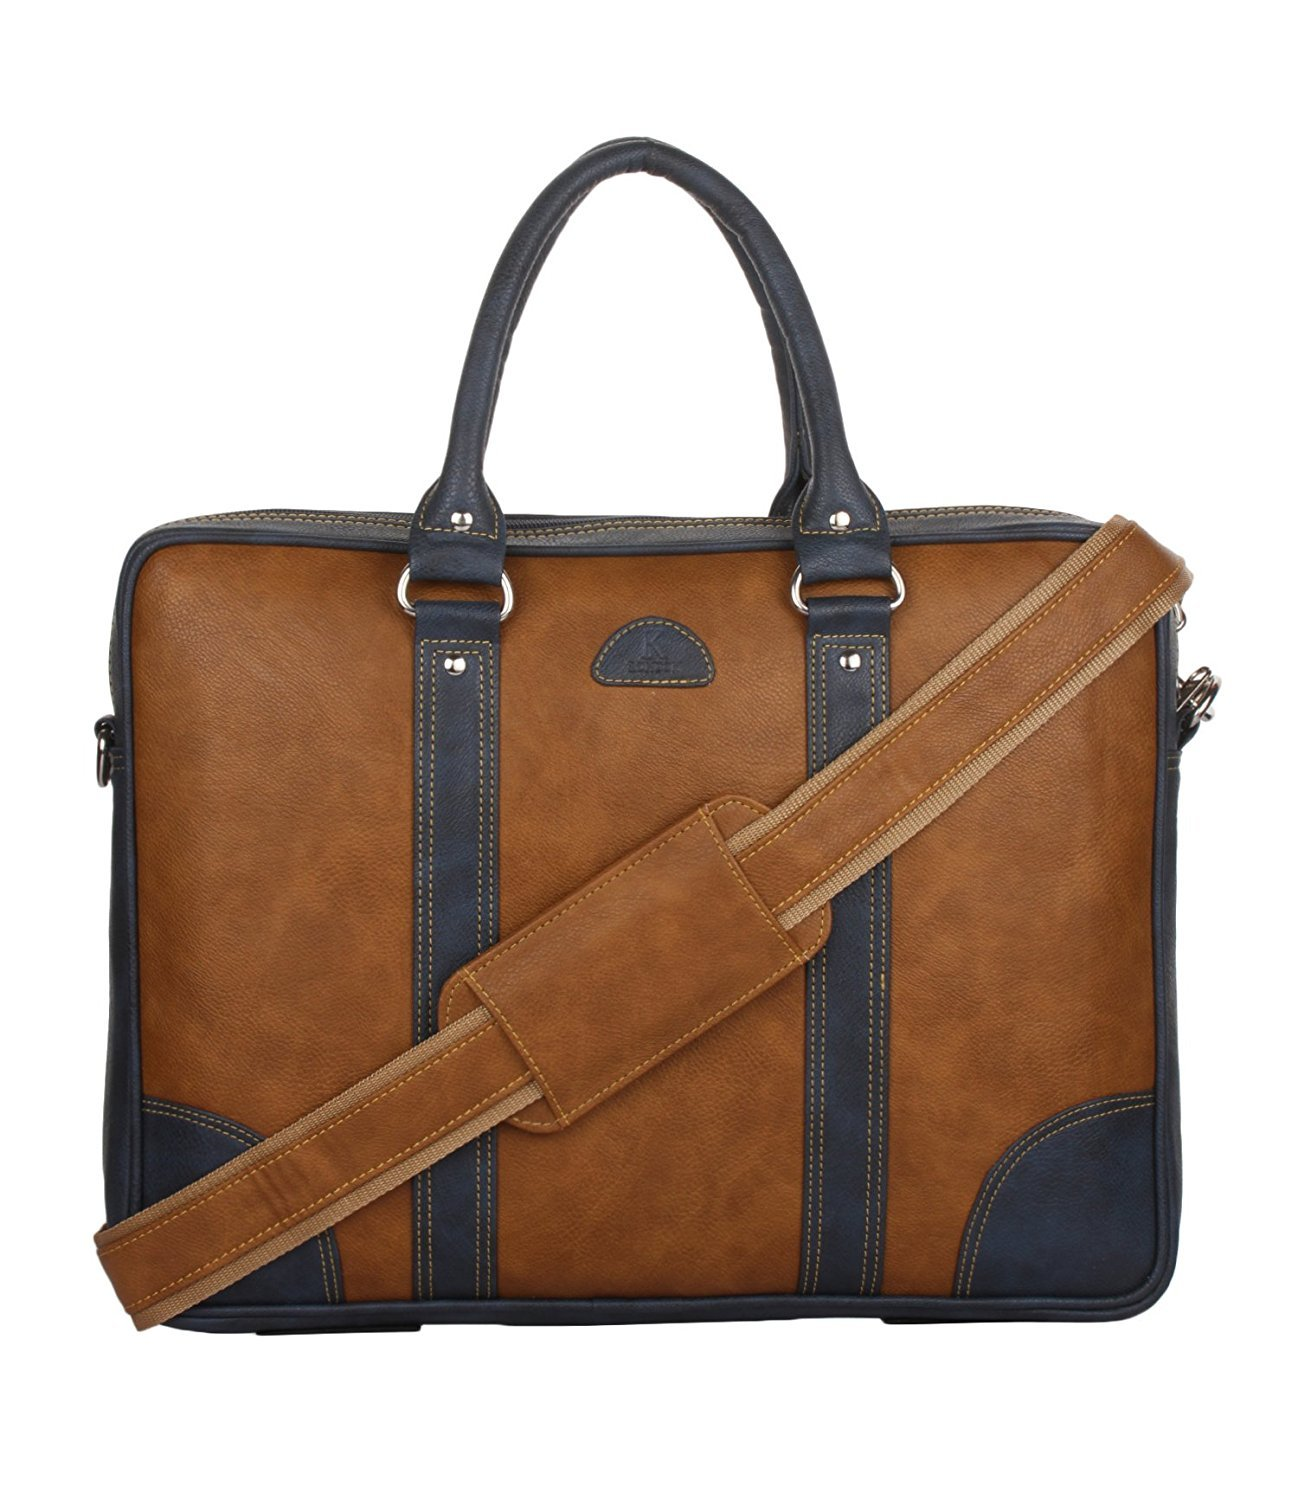 K London Leatherite Handmade Tan Unisex Bag Cross Over Shoulder Messenger Bag with Laptop Compartment (1803_tan) product image